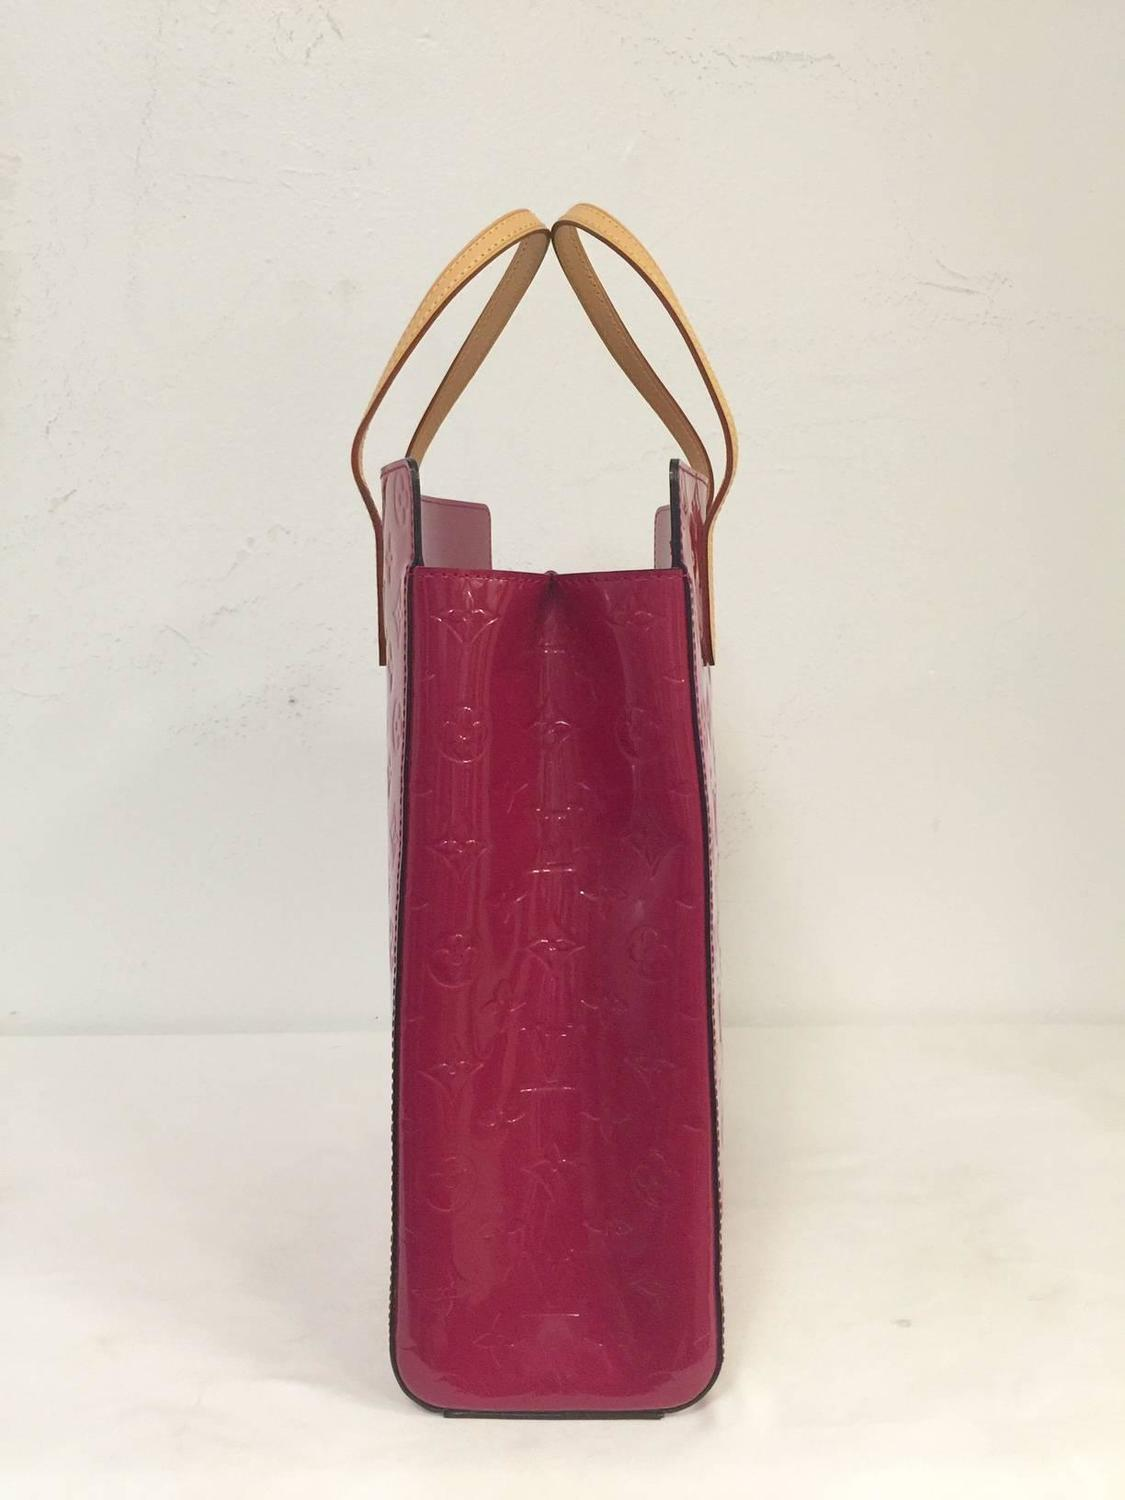 Luscious Louis Vuitton Fushia Vernis Catalina Ns Tote